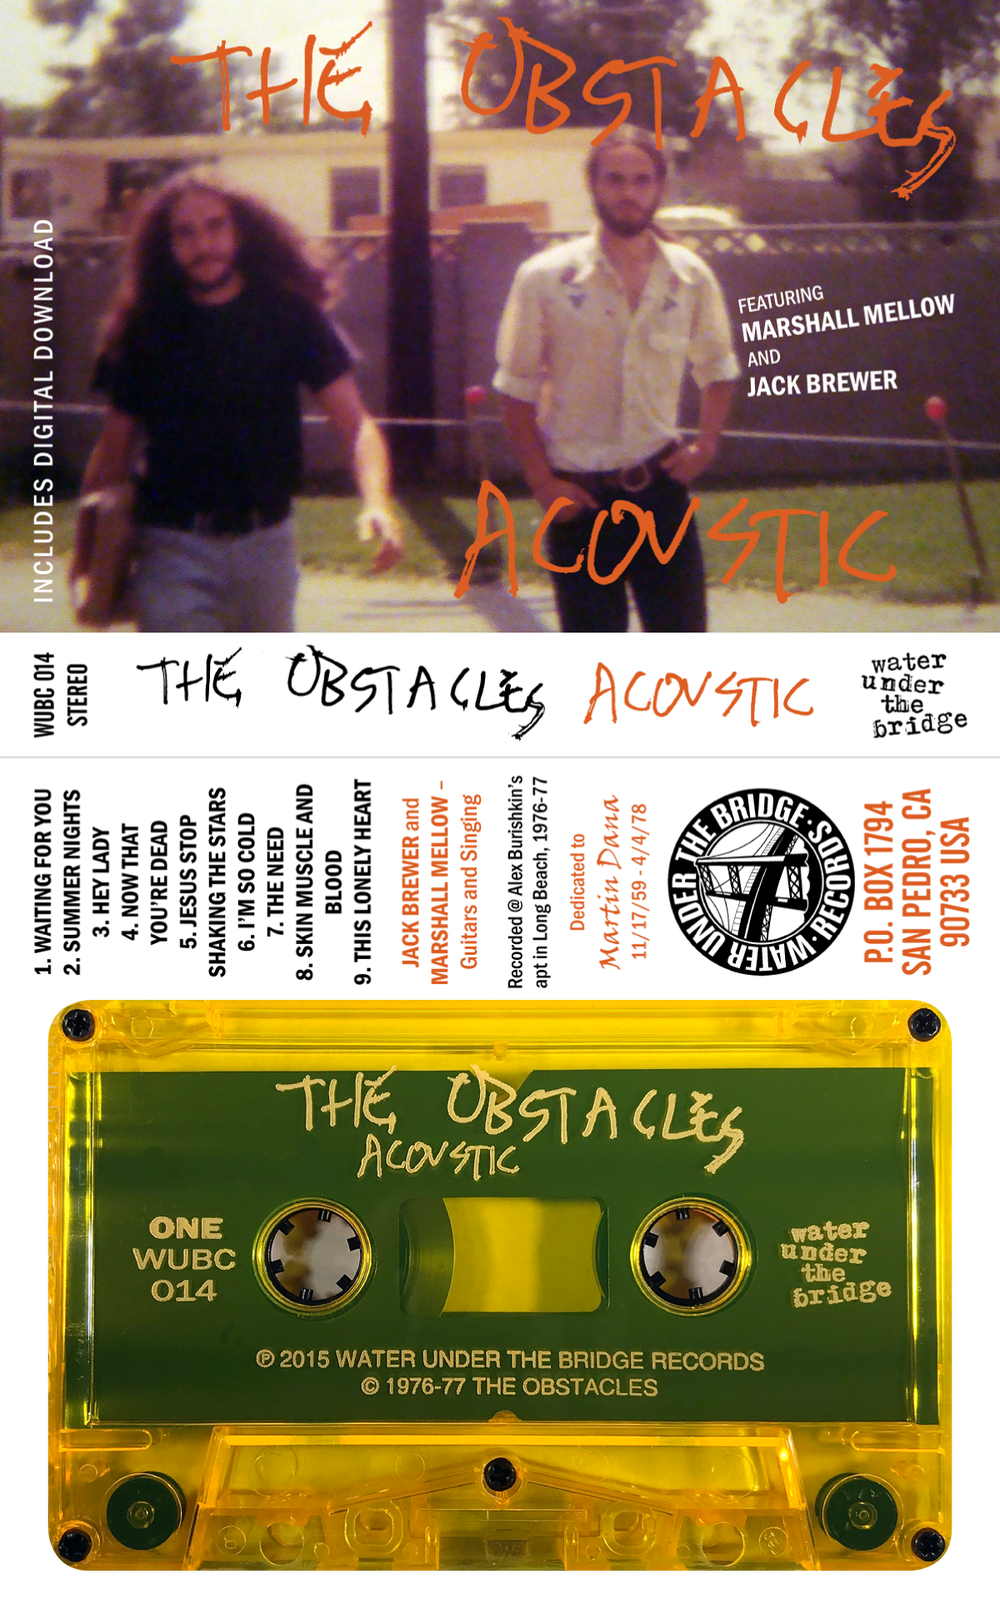 THE OBSTACLES - Acoustic 1976 → cass (precursor to Saccharine Trust)